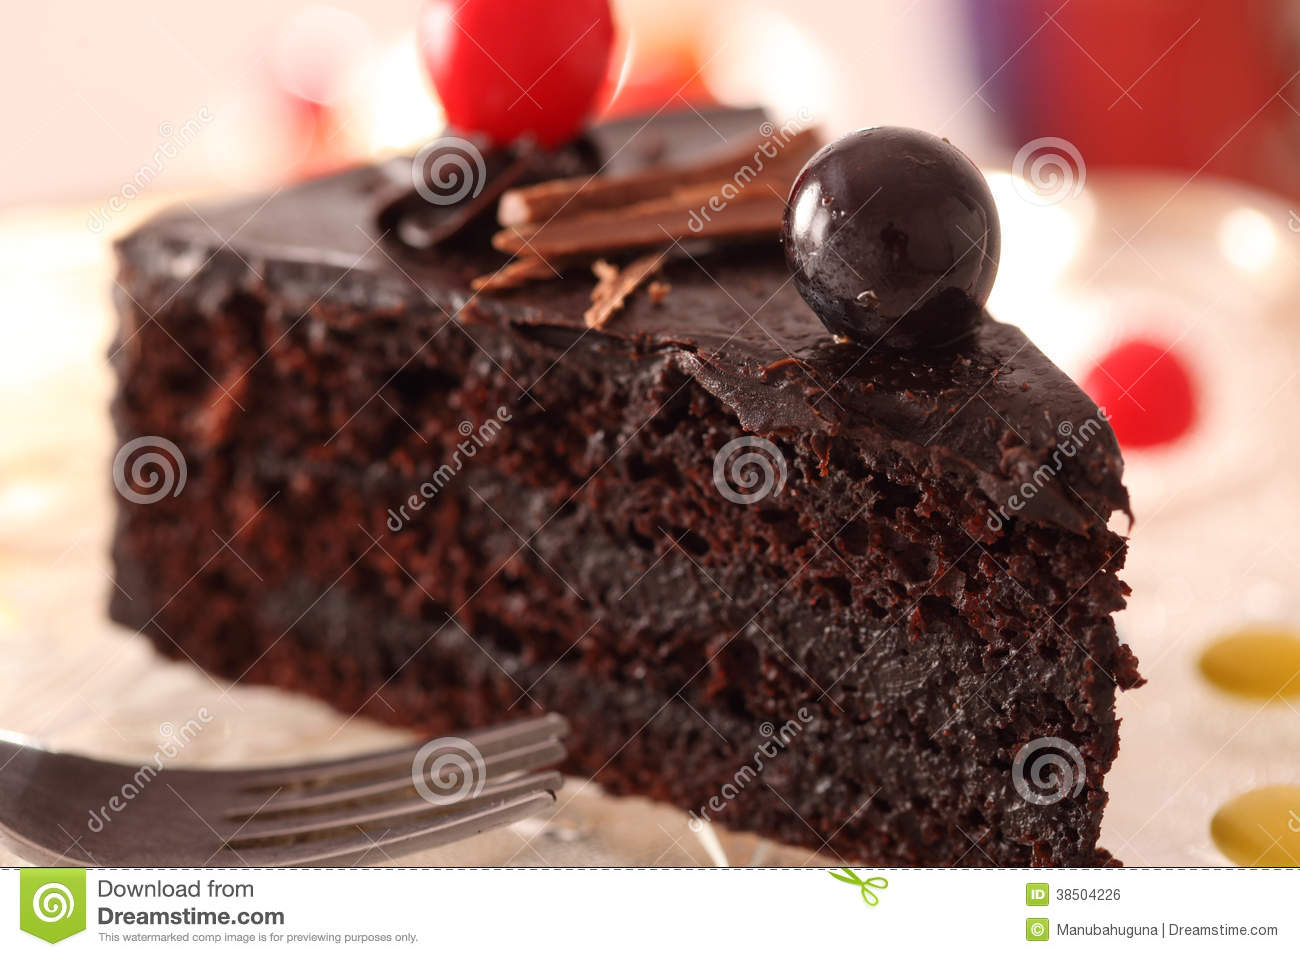 Chocolate Pastry Cake Images : Chocolate Pastry Royalty Free Stock Image - Image: 38504226